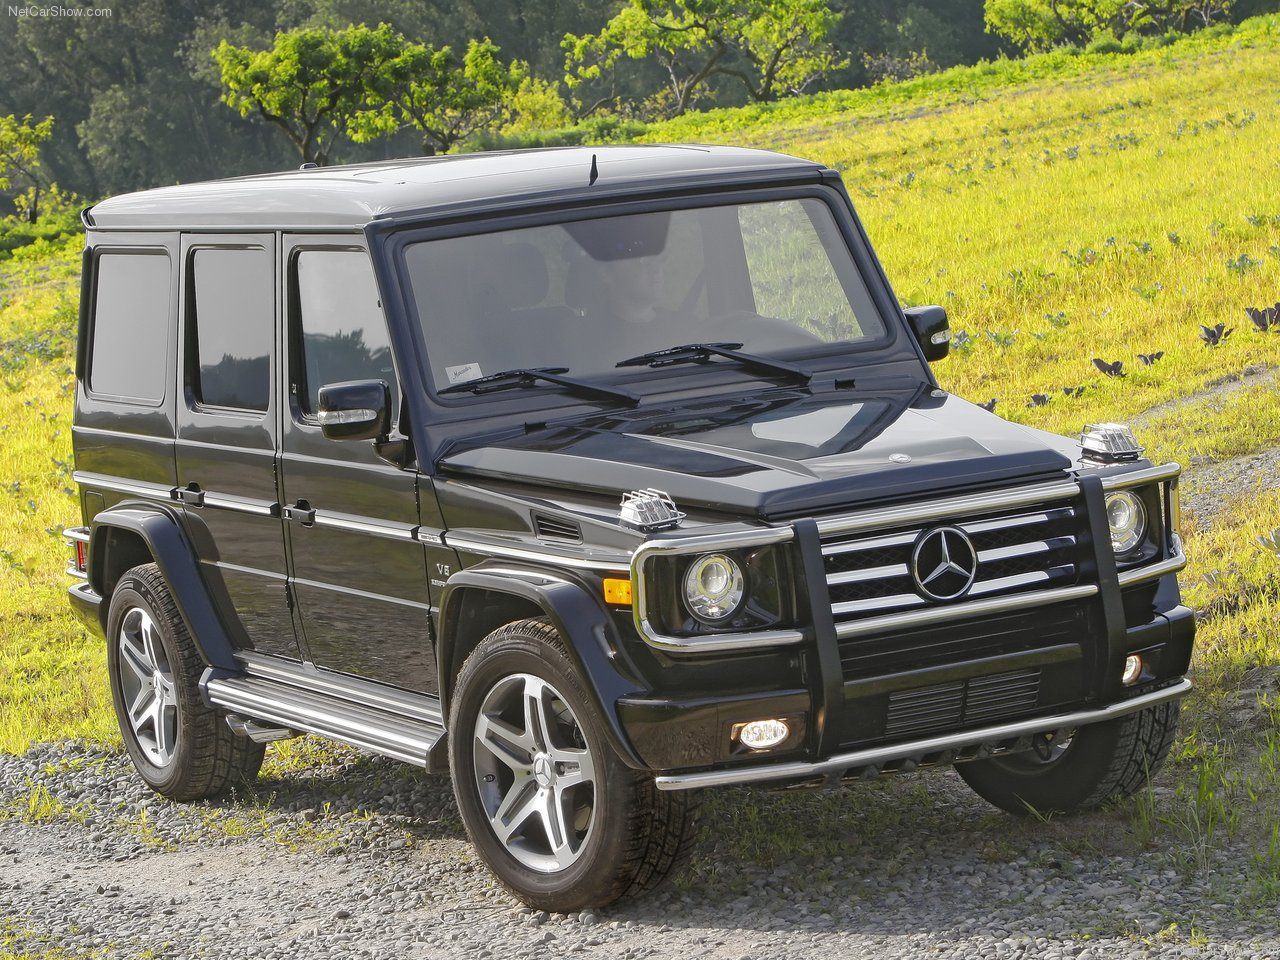 2009 mercedes benz g55 amg mercedes benz cars. Black Bedroom Furniture Sets. Home Design Ideas